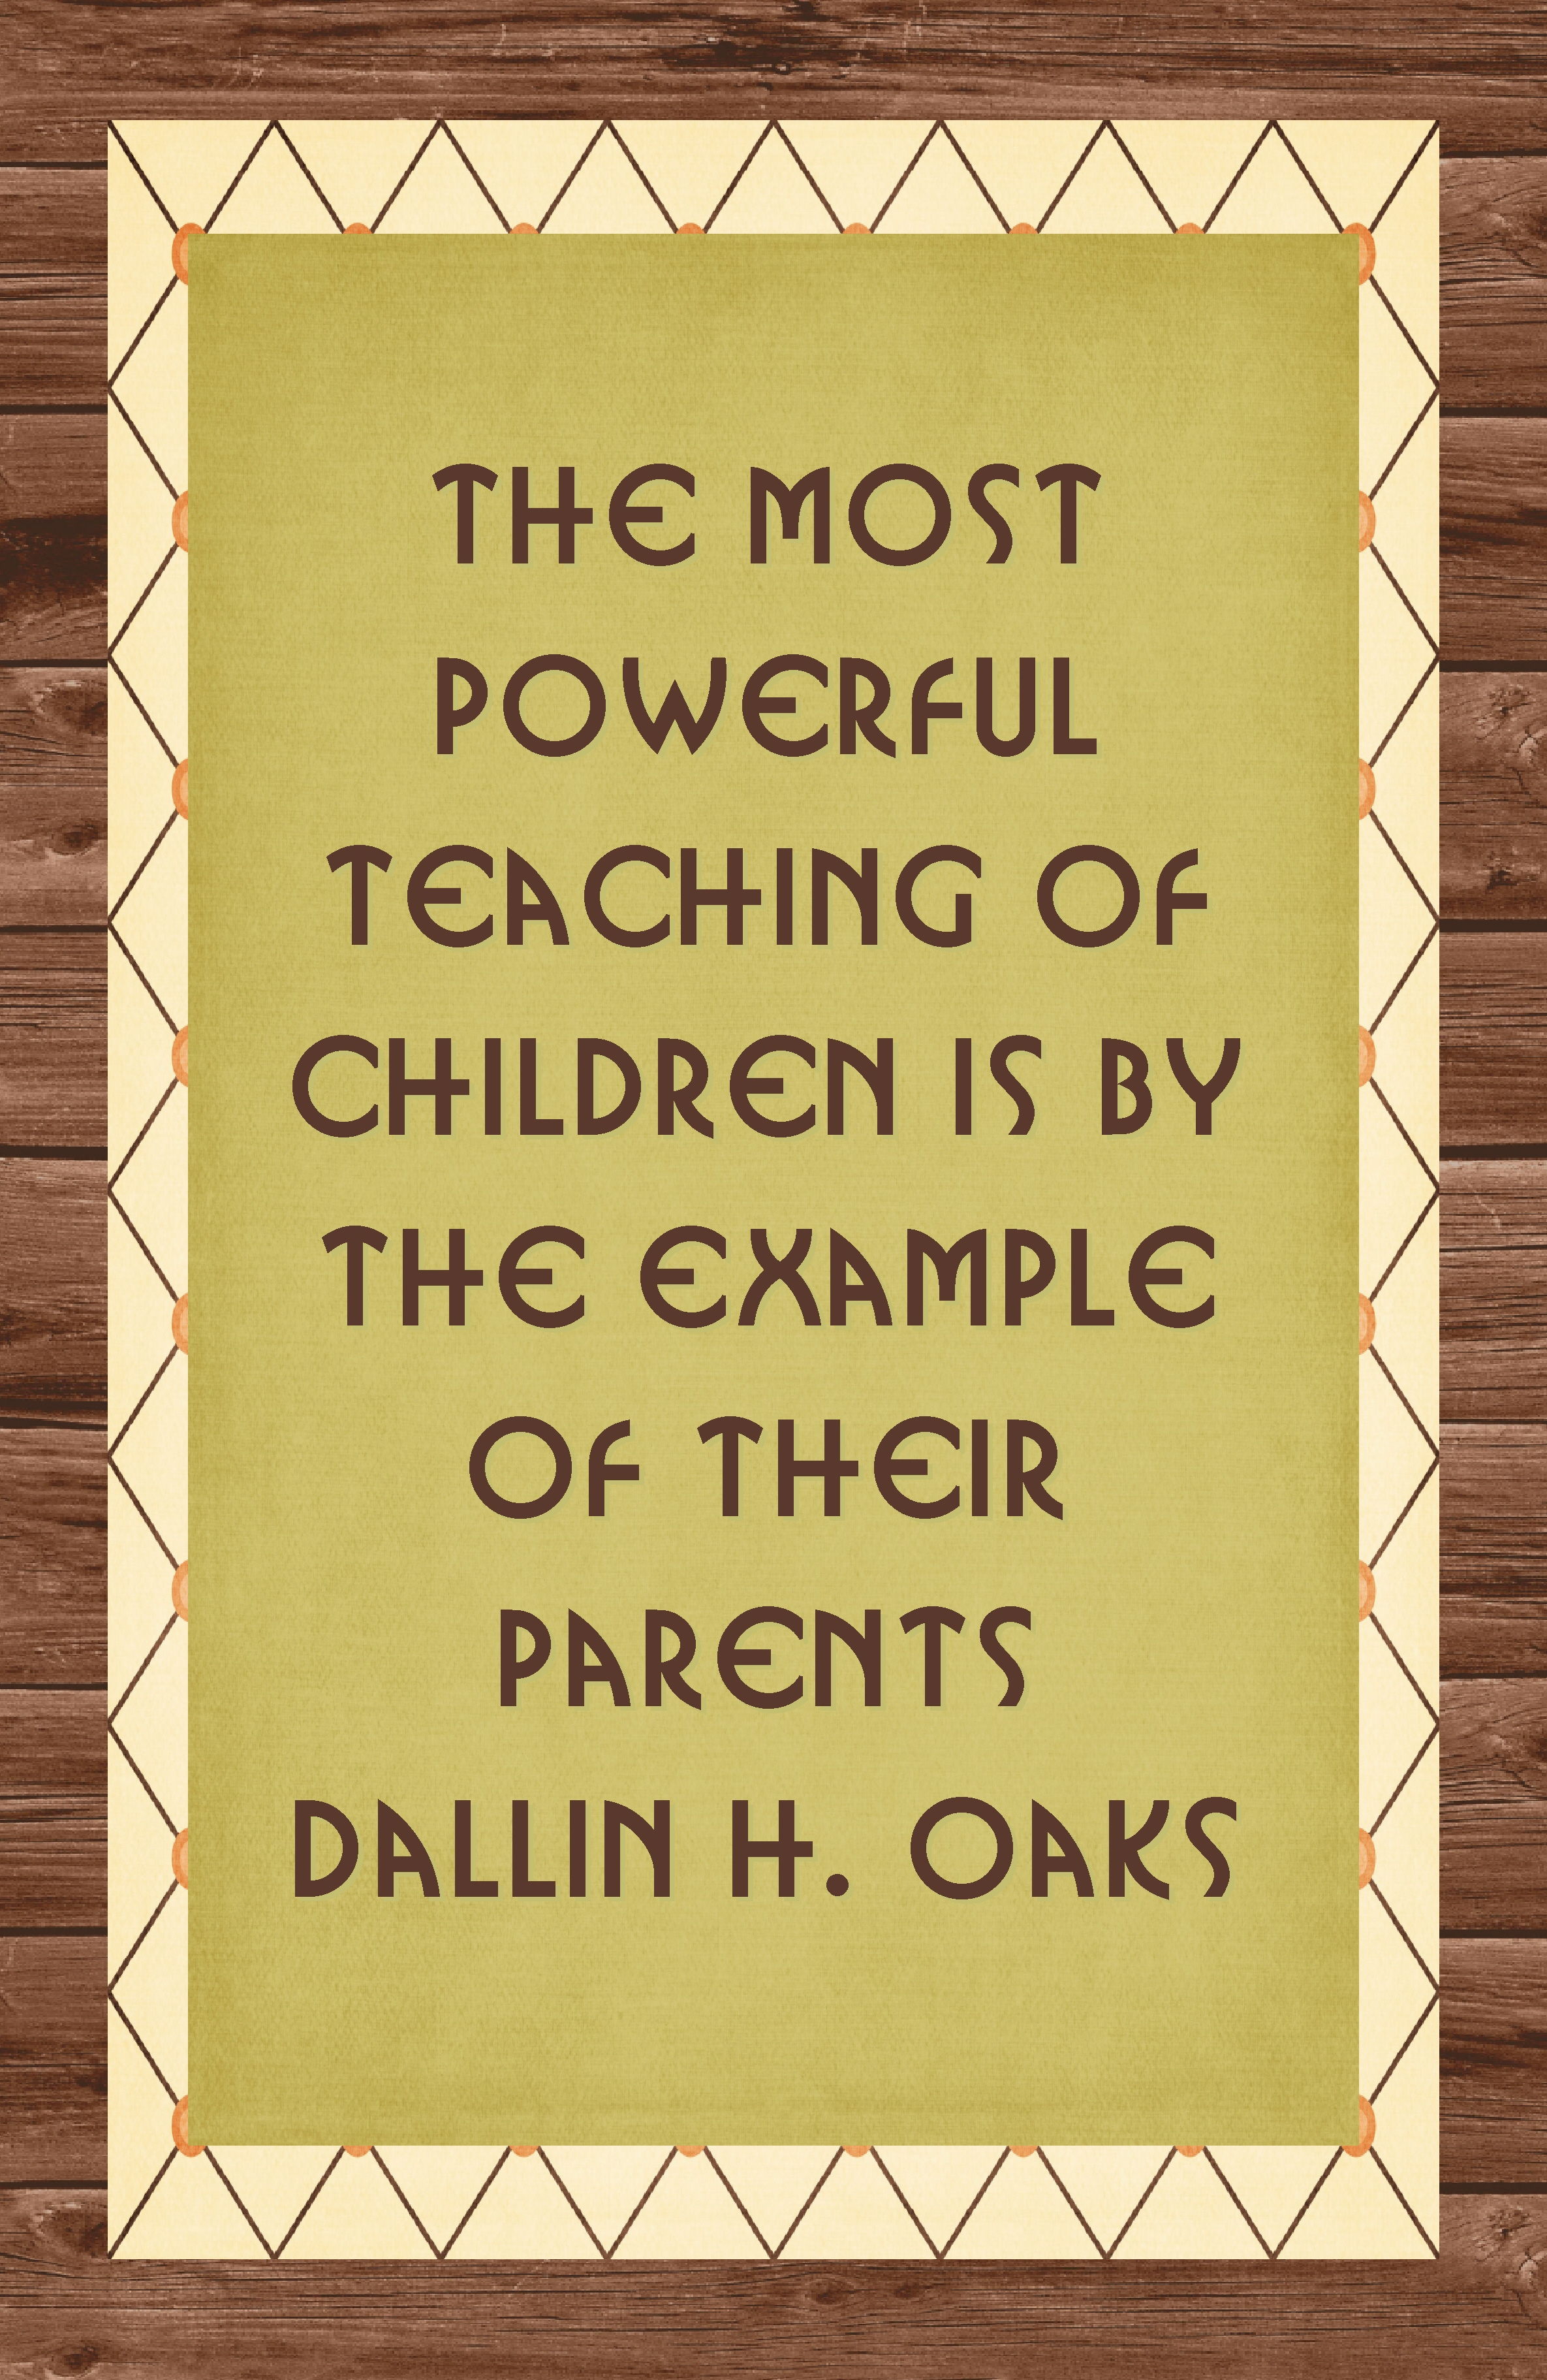 Quotes About Teaching Children The Most Powerful Teaching Of Children Isthe Example Of Their